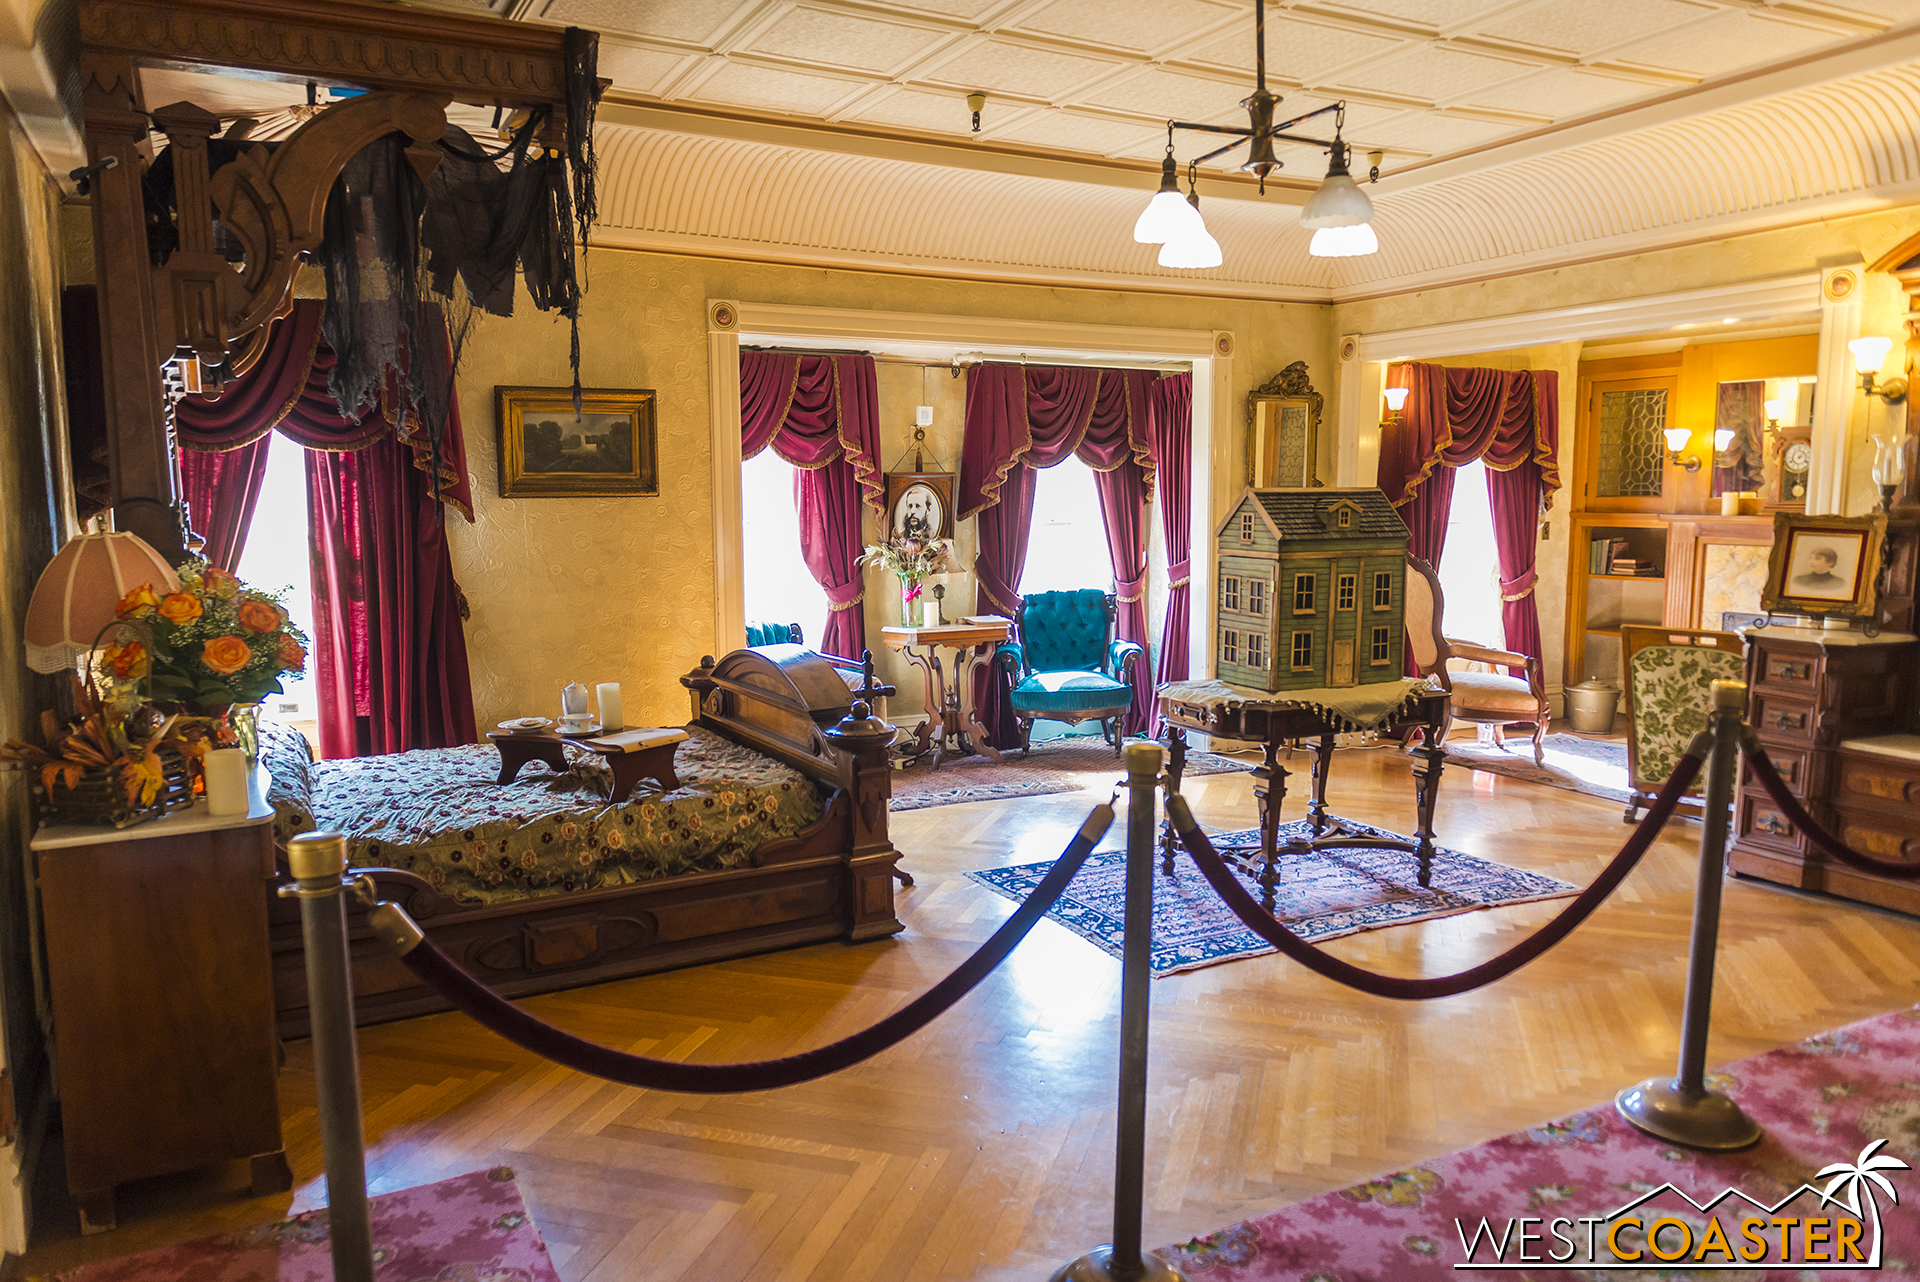 The daytime tours don't really address them, and if one didn't come during the evening or at any other time of the year, he or she might think items like this dollhouse had no specific holiday function.